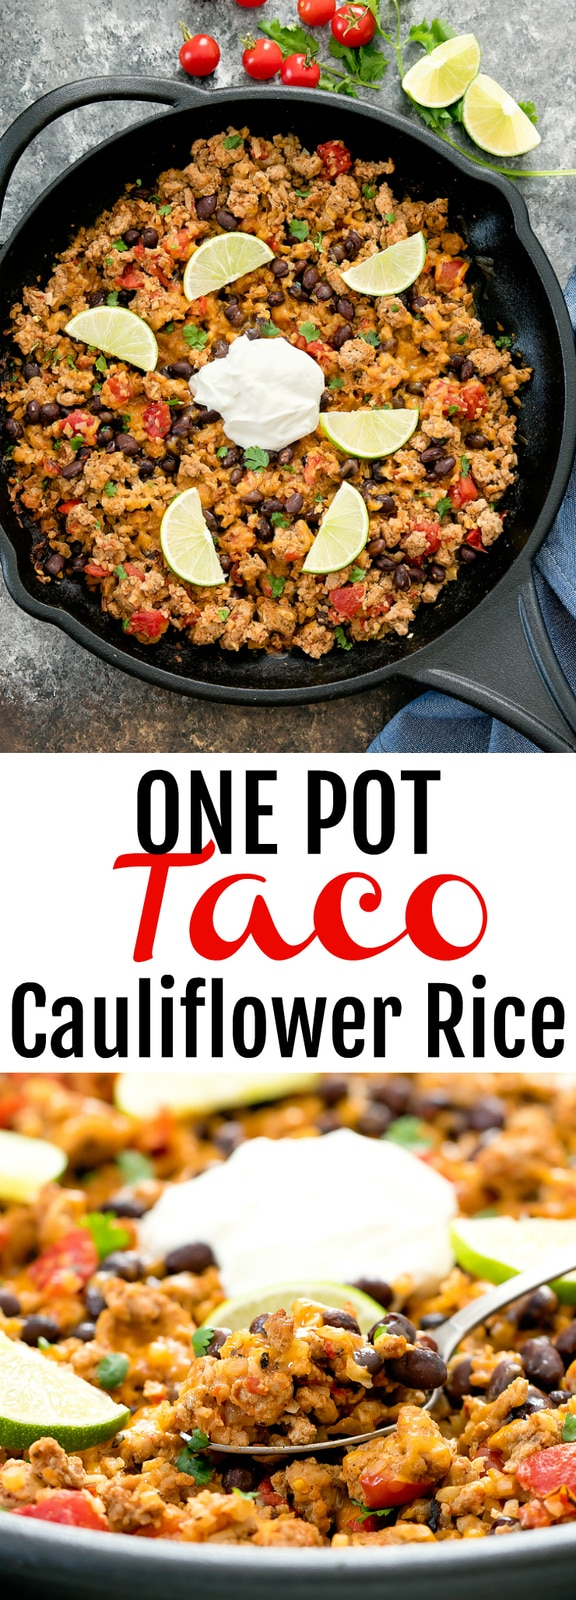 One Pot Taco Cauliflower Rice. An easy and flavorful dish that cooks in one pot and is ready in less than 30 minutes. Homemade turkey taco filling is cooked with cauliflower rice and topped with popular taco toppings.